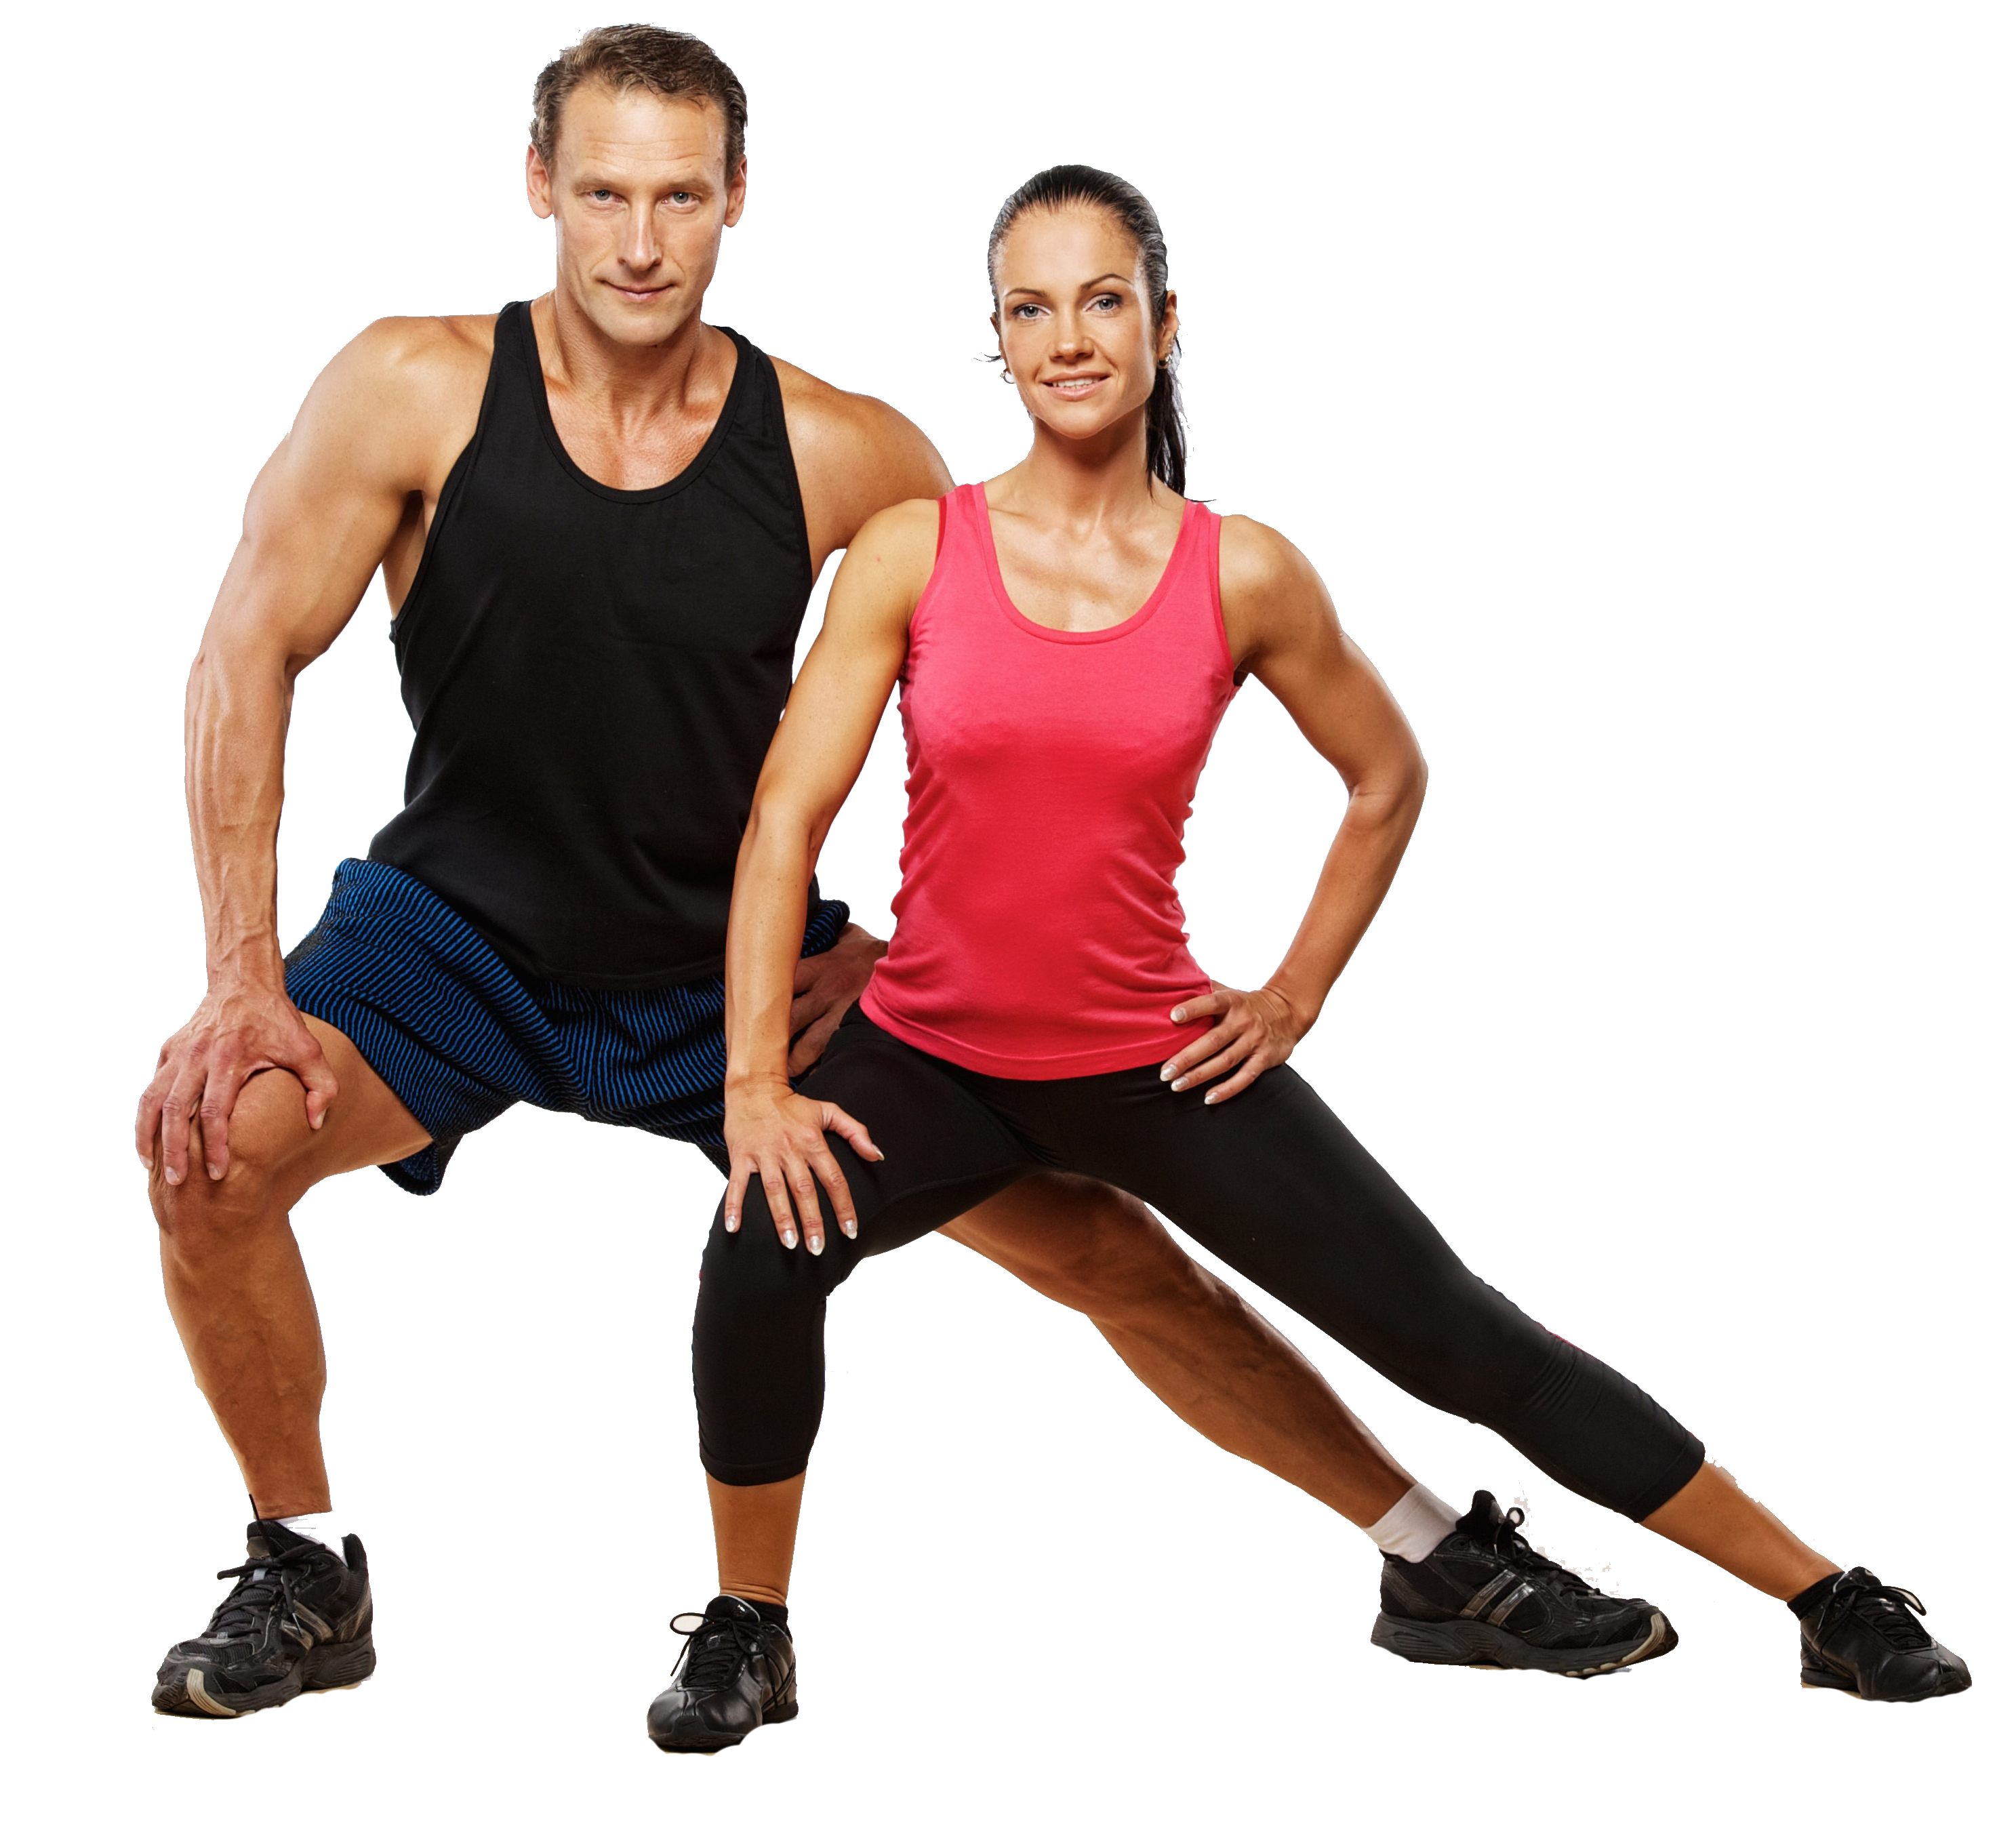 Fitness png. Sport images free download